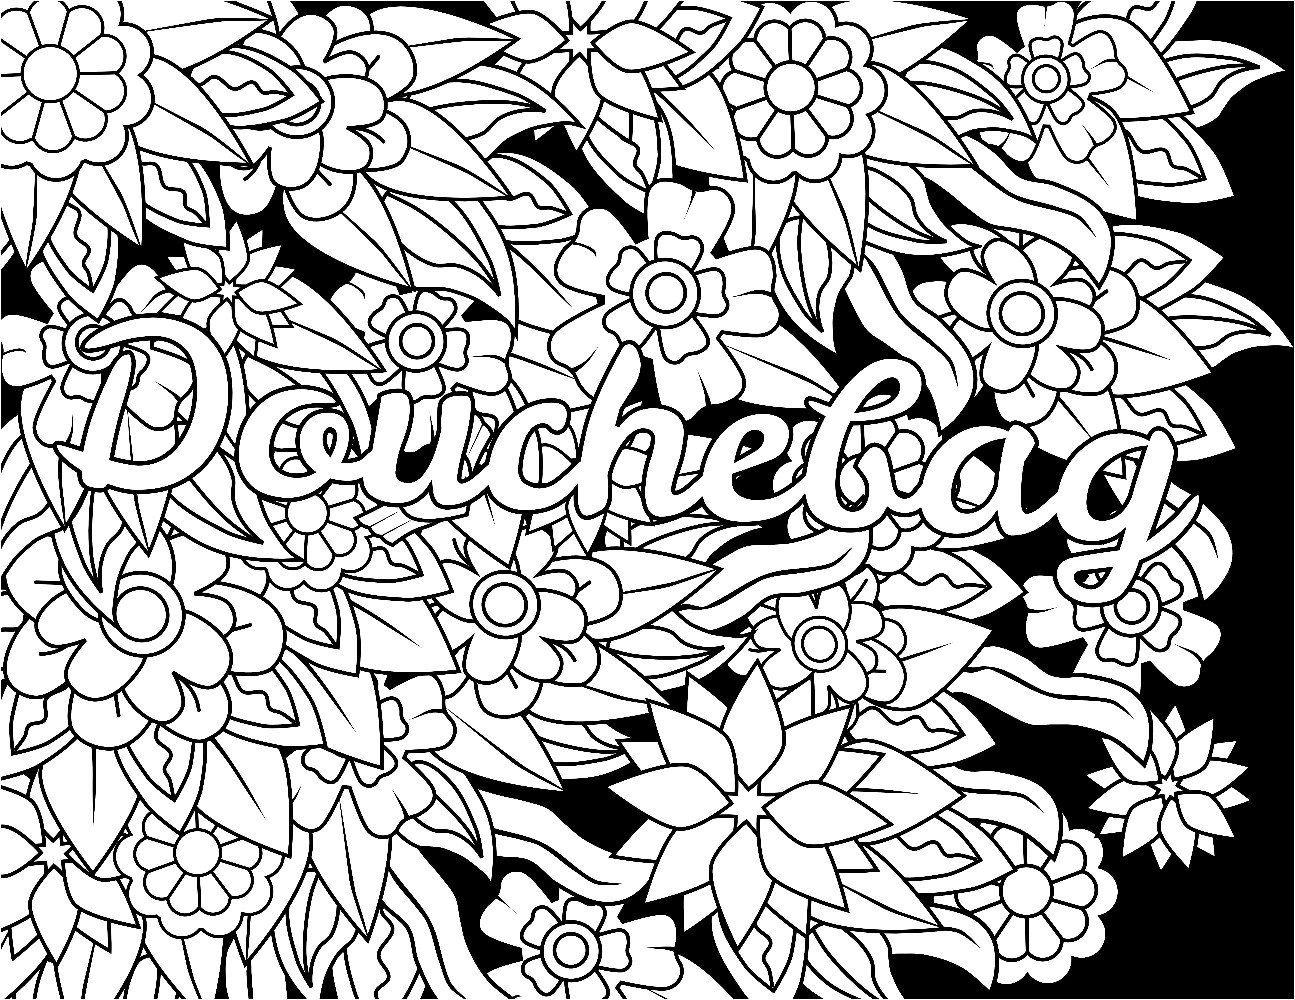 buy flower vase of cool vases flower vase coloring page pages flowers in a top i 0d pertaining to cool vases flower vase coloring page pages flowers in a top i 0d